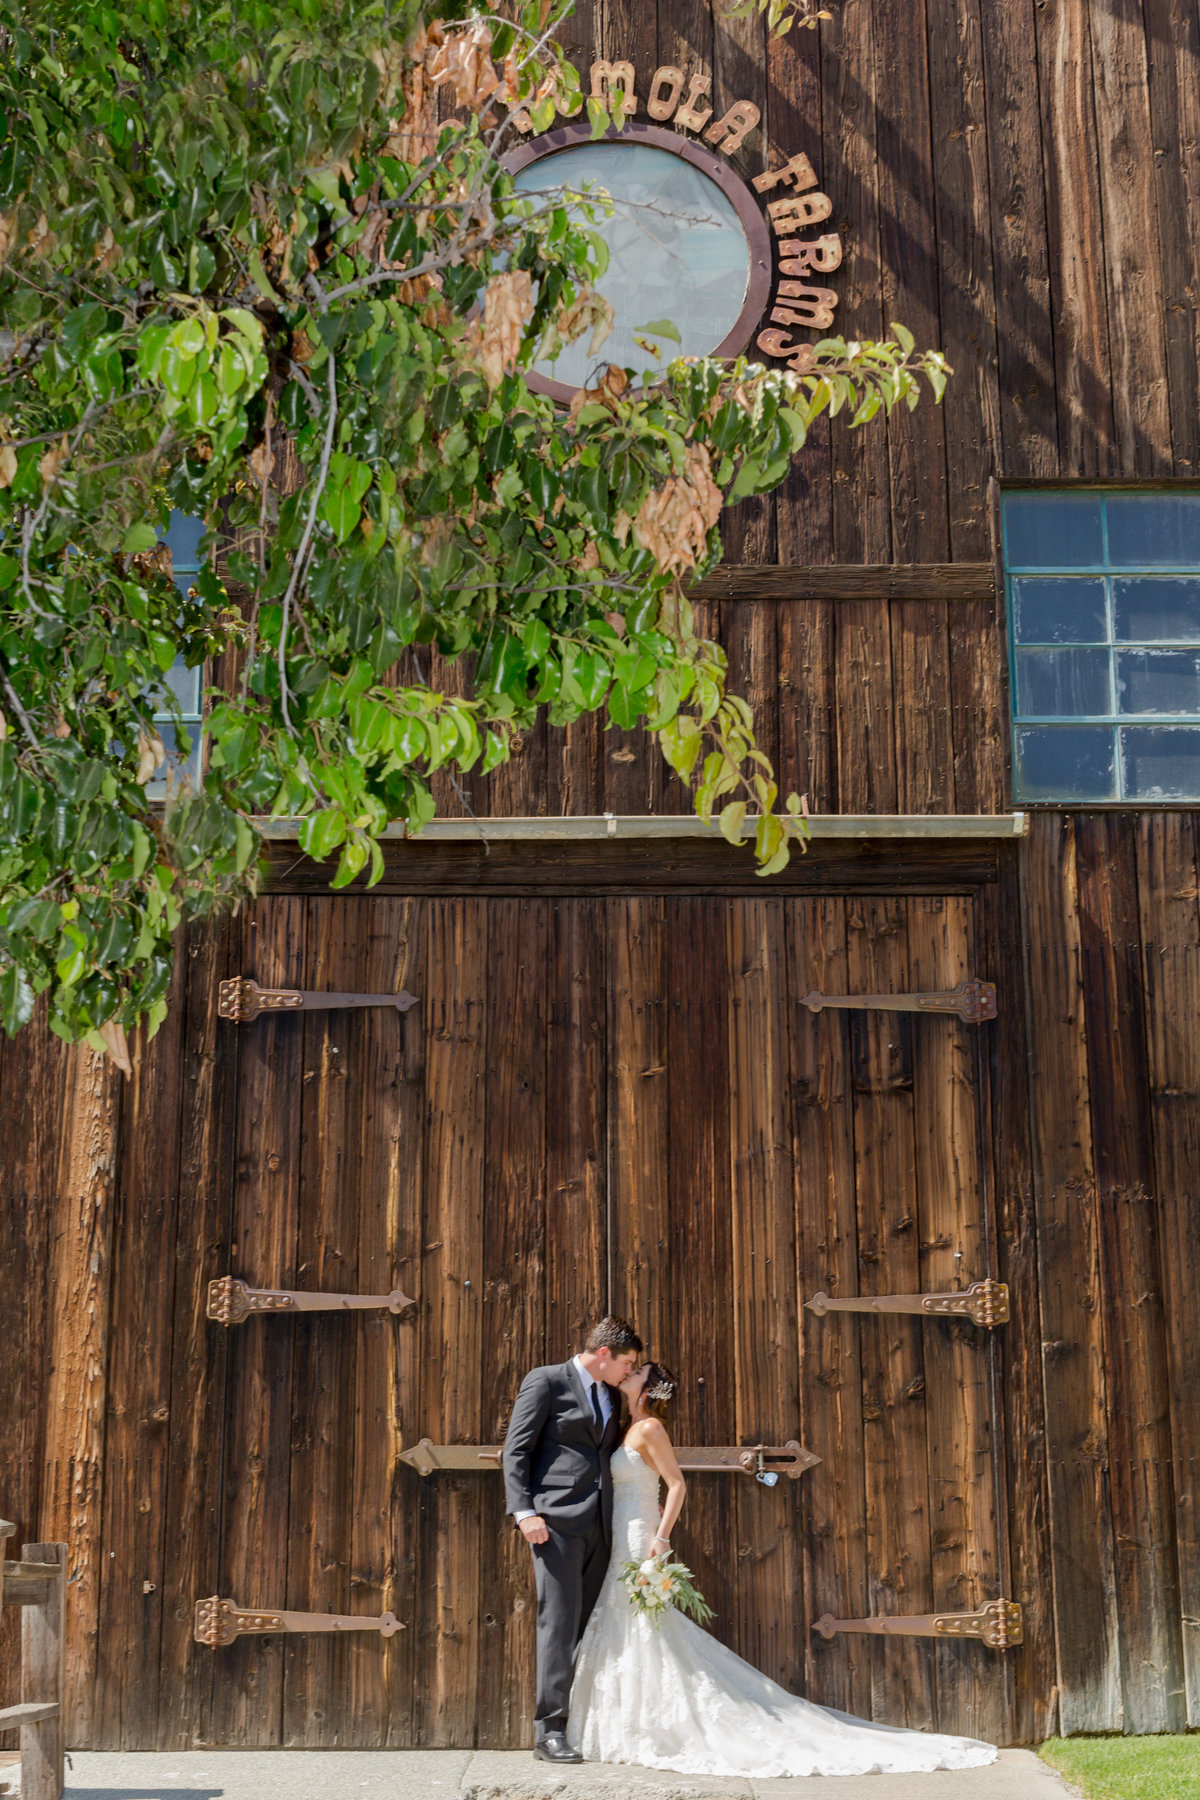 Erica Mendenhall Photography_Barn Wedding_MP_6483_edweb